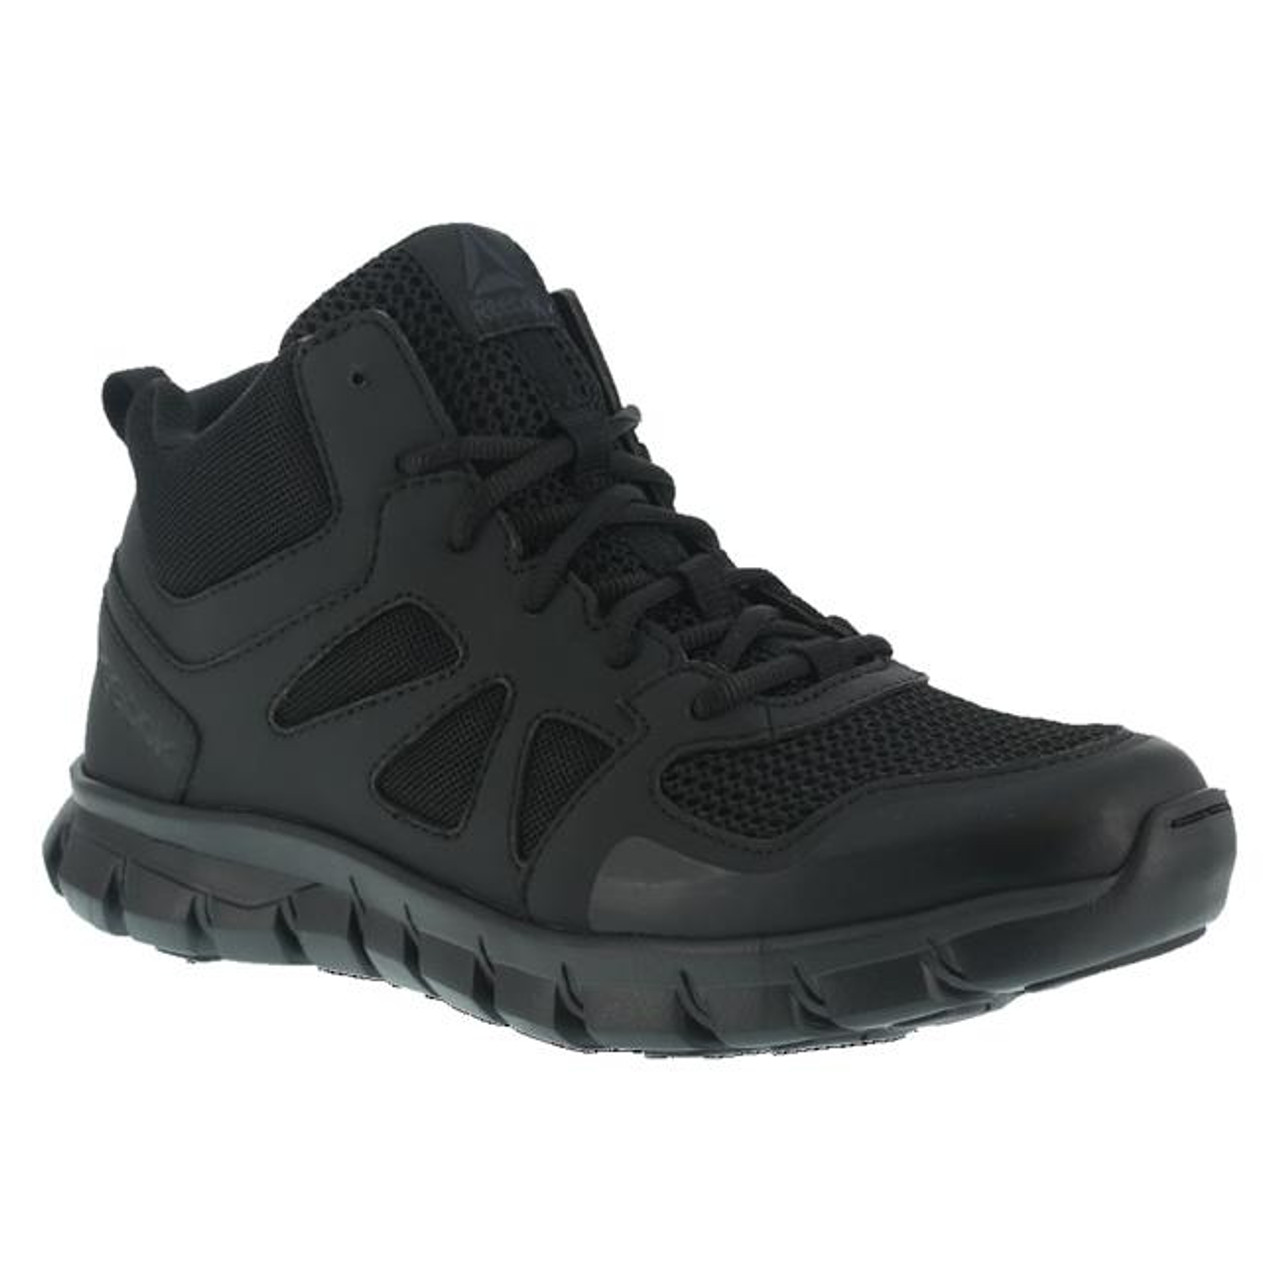 37a58604c62 Reebok RB8405 Men's Sublite Cushion Mid Tactical Boot